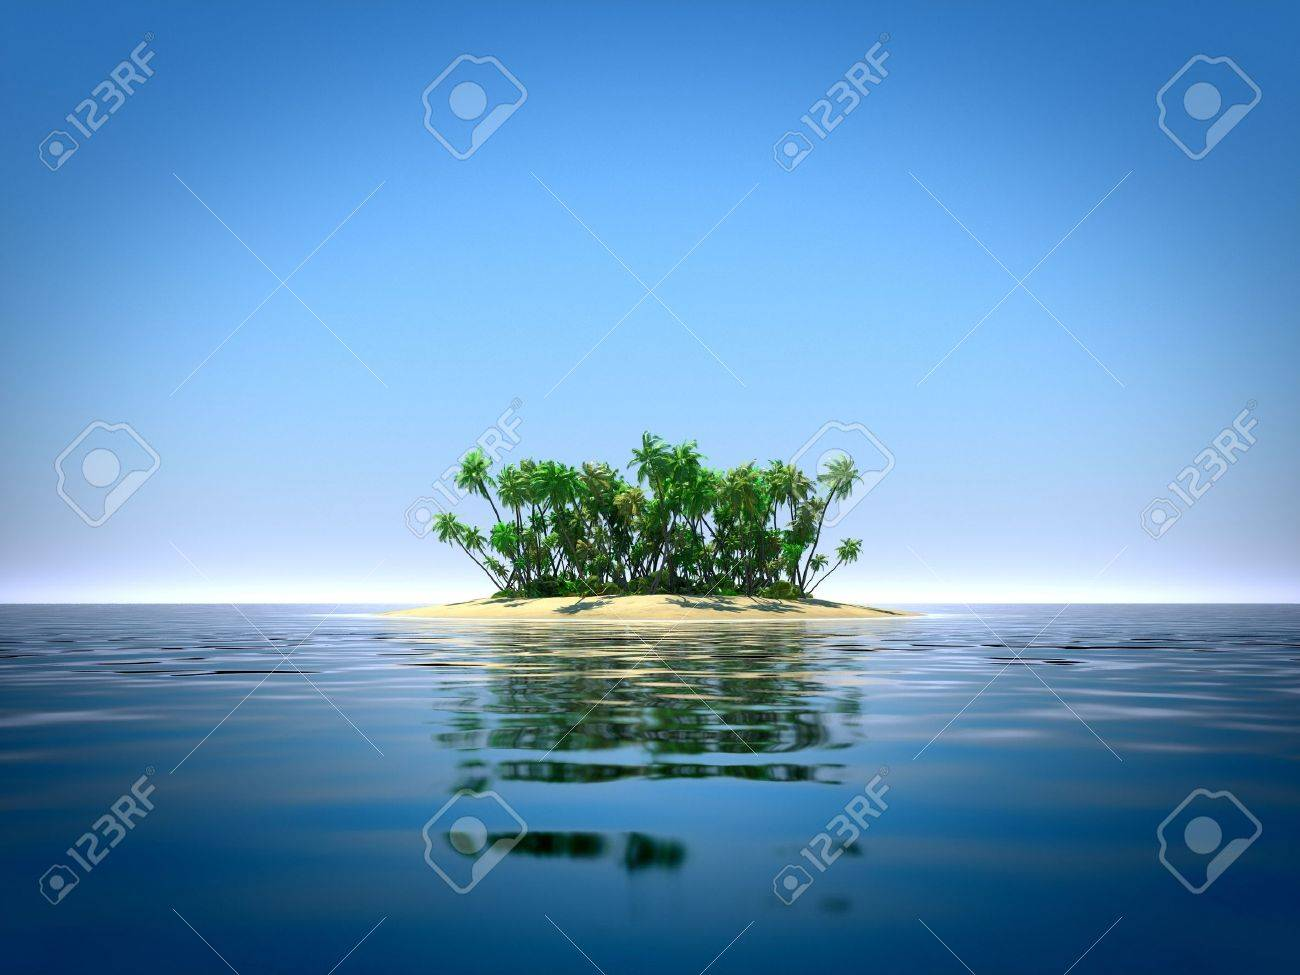 Tropical island in the ocean Stock Photo - 20323431